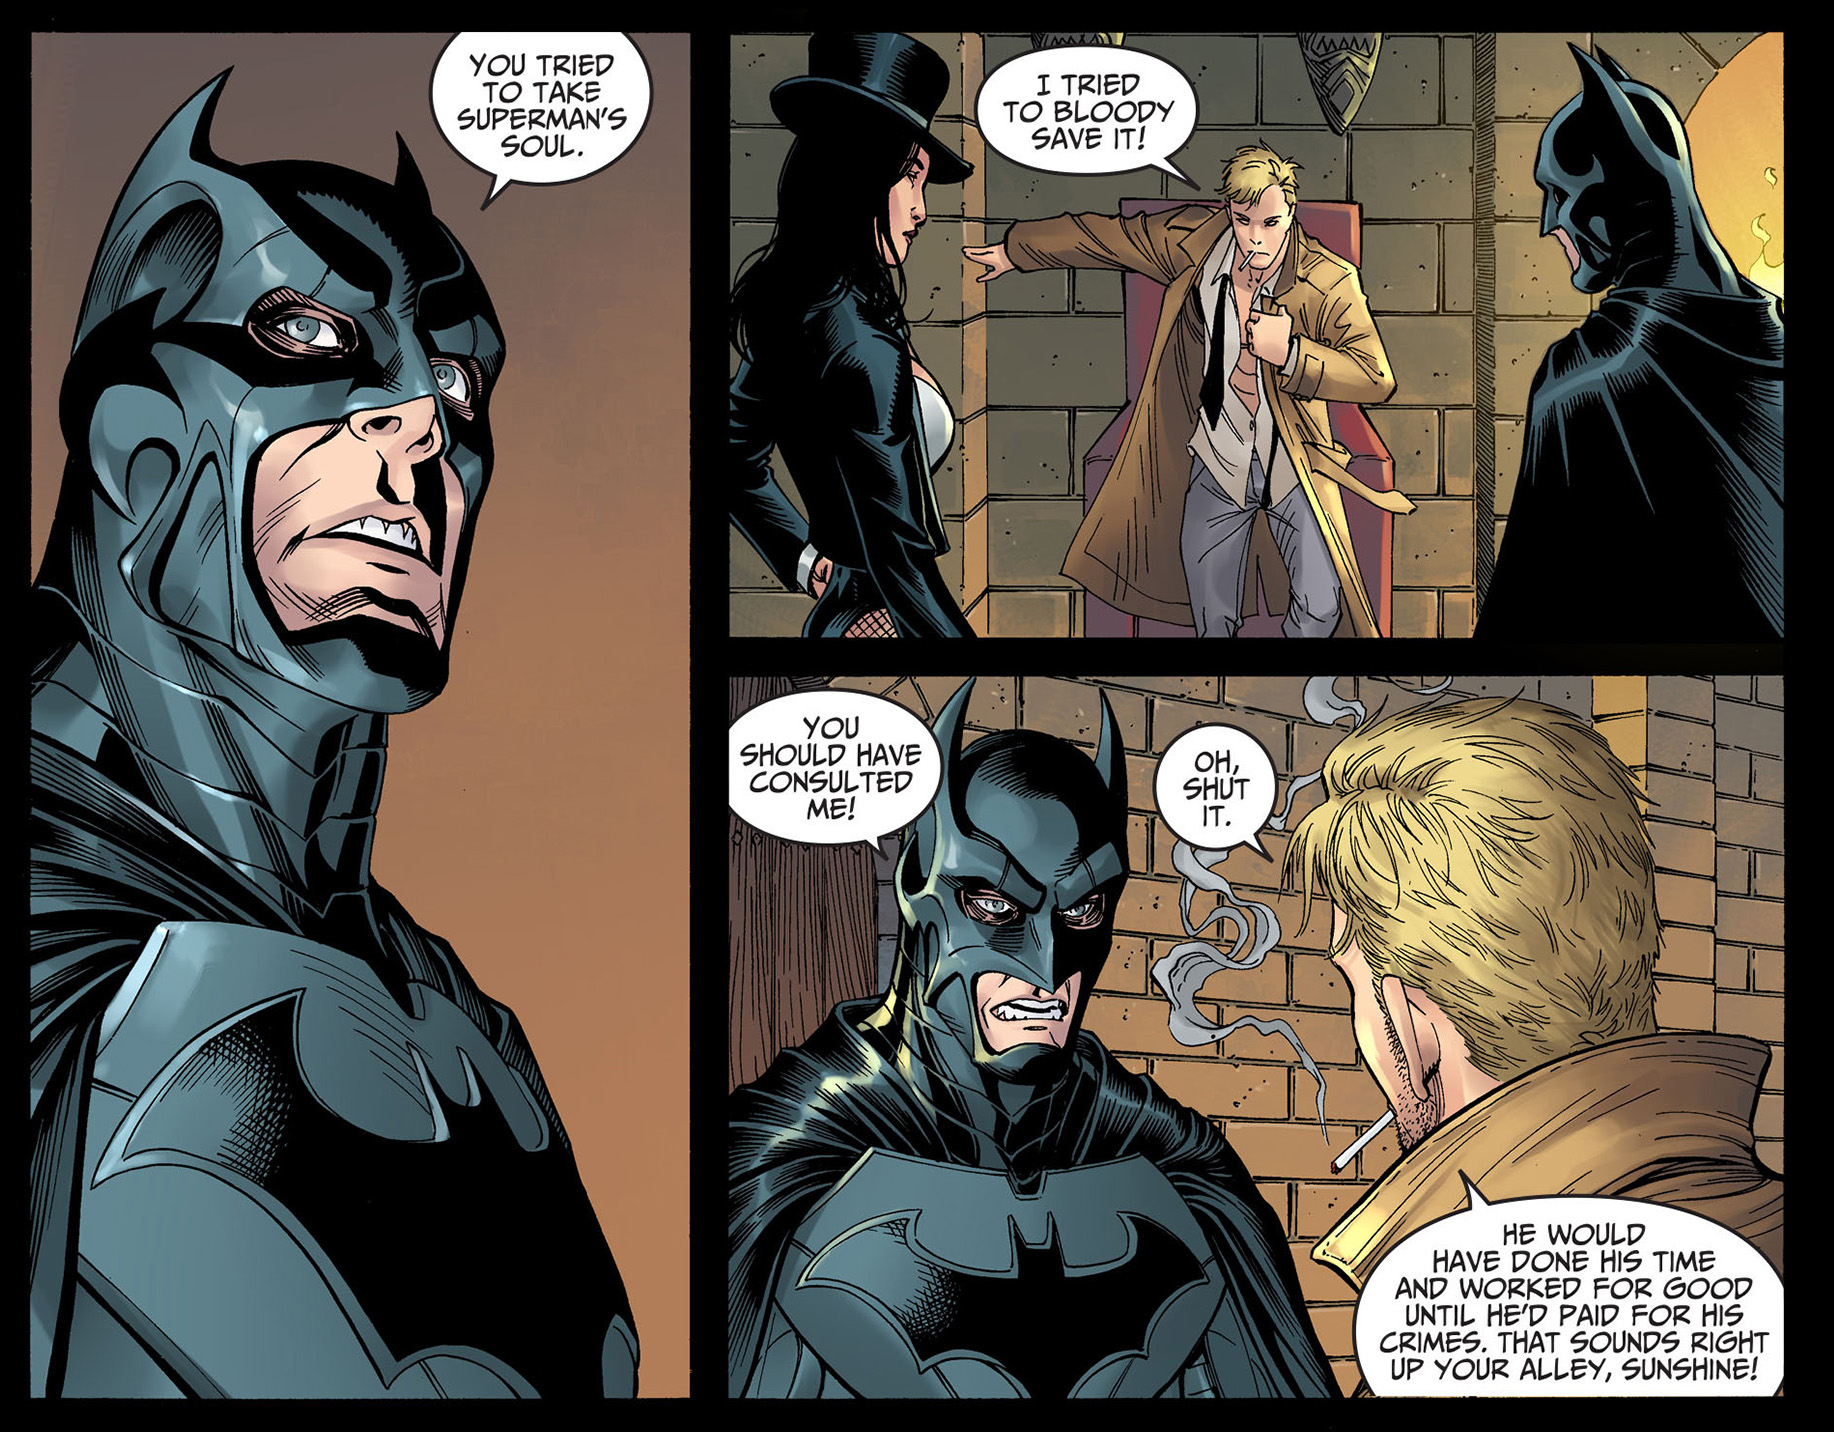 zatanna makes batman and constantine shut up